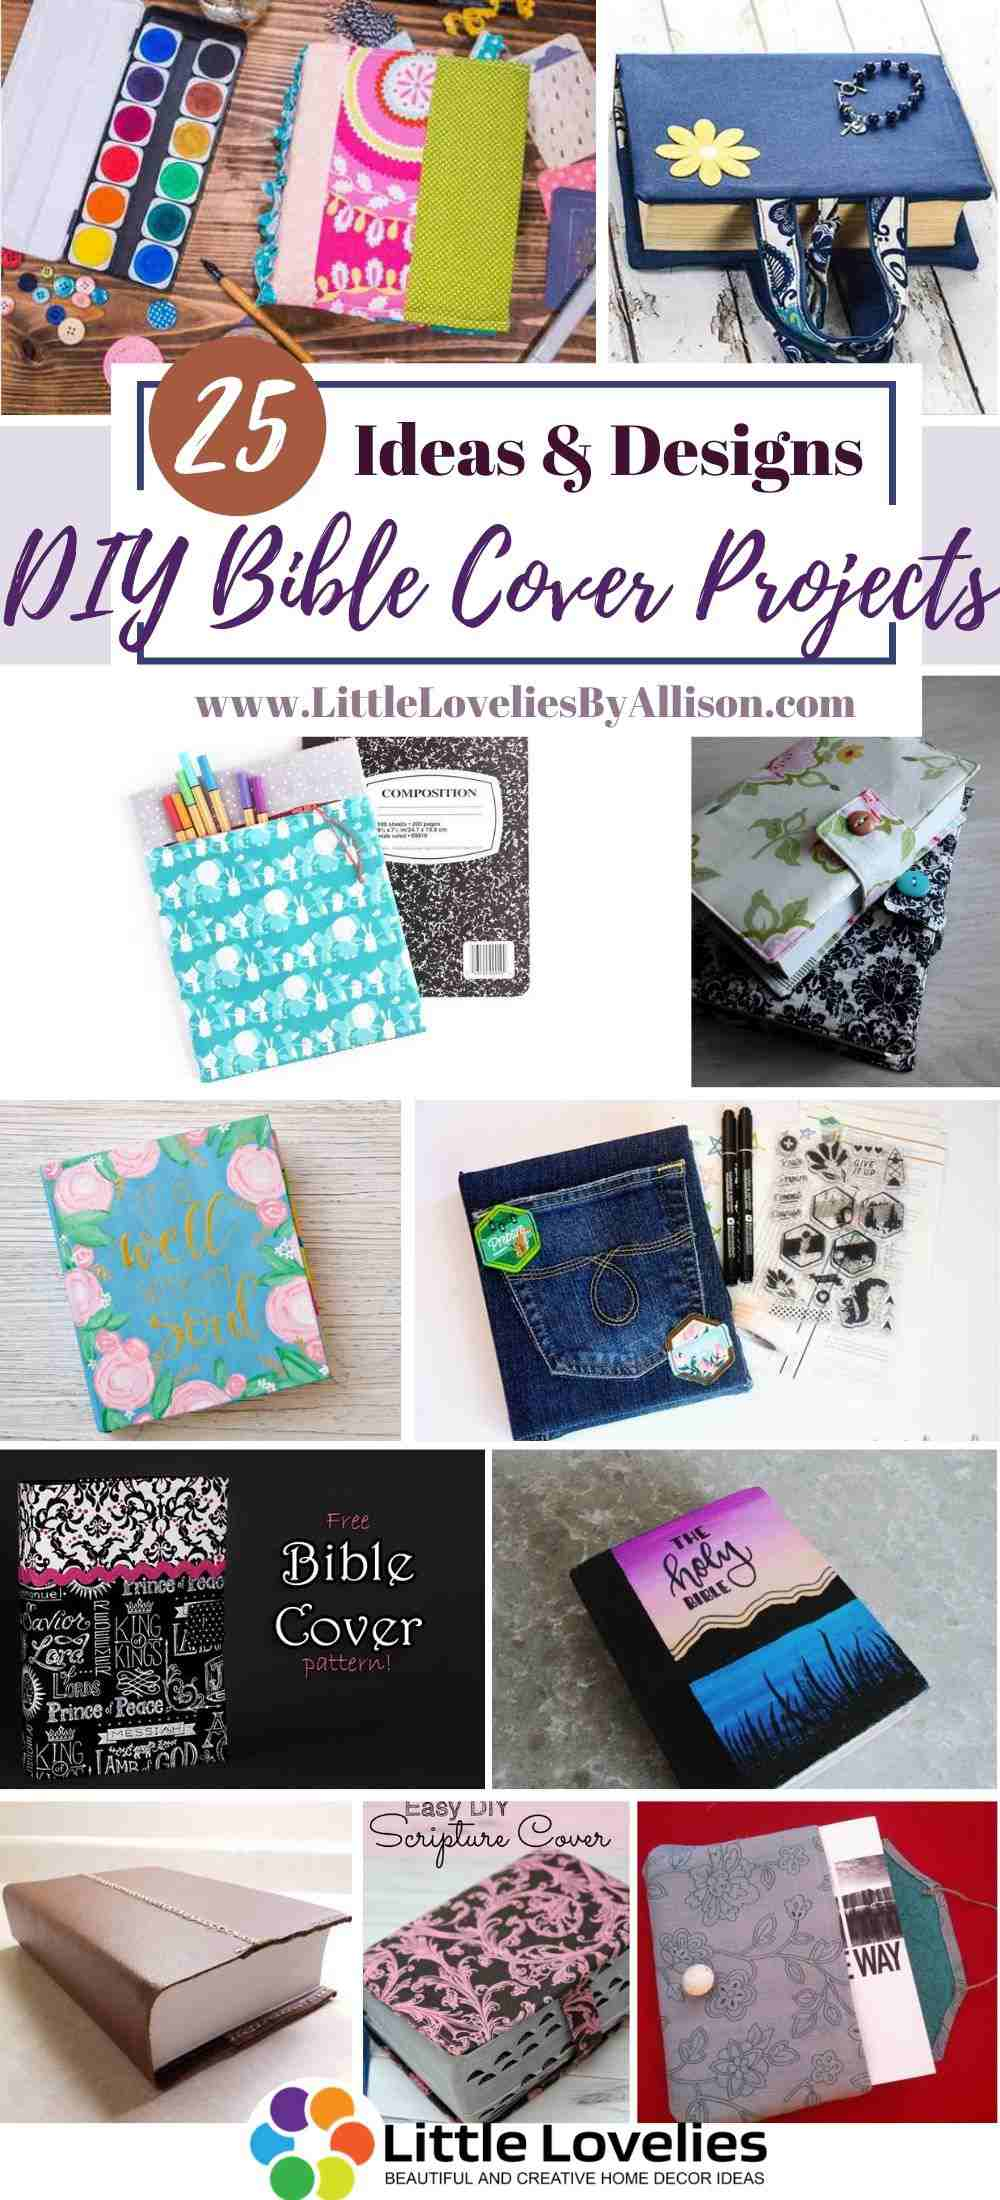 Best-DIY-Bible-Cover-Projects